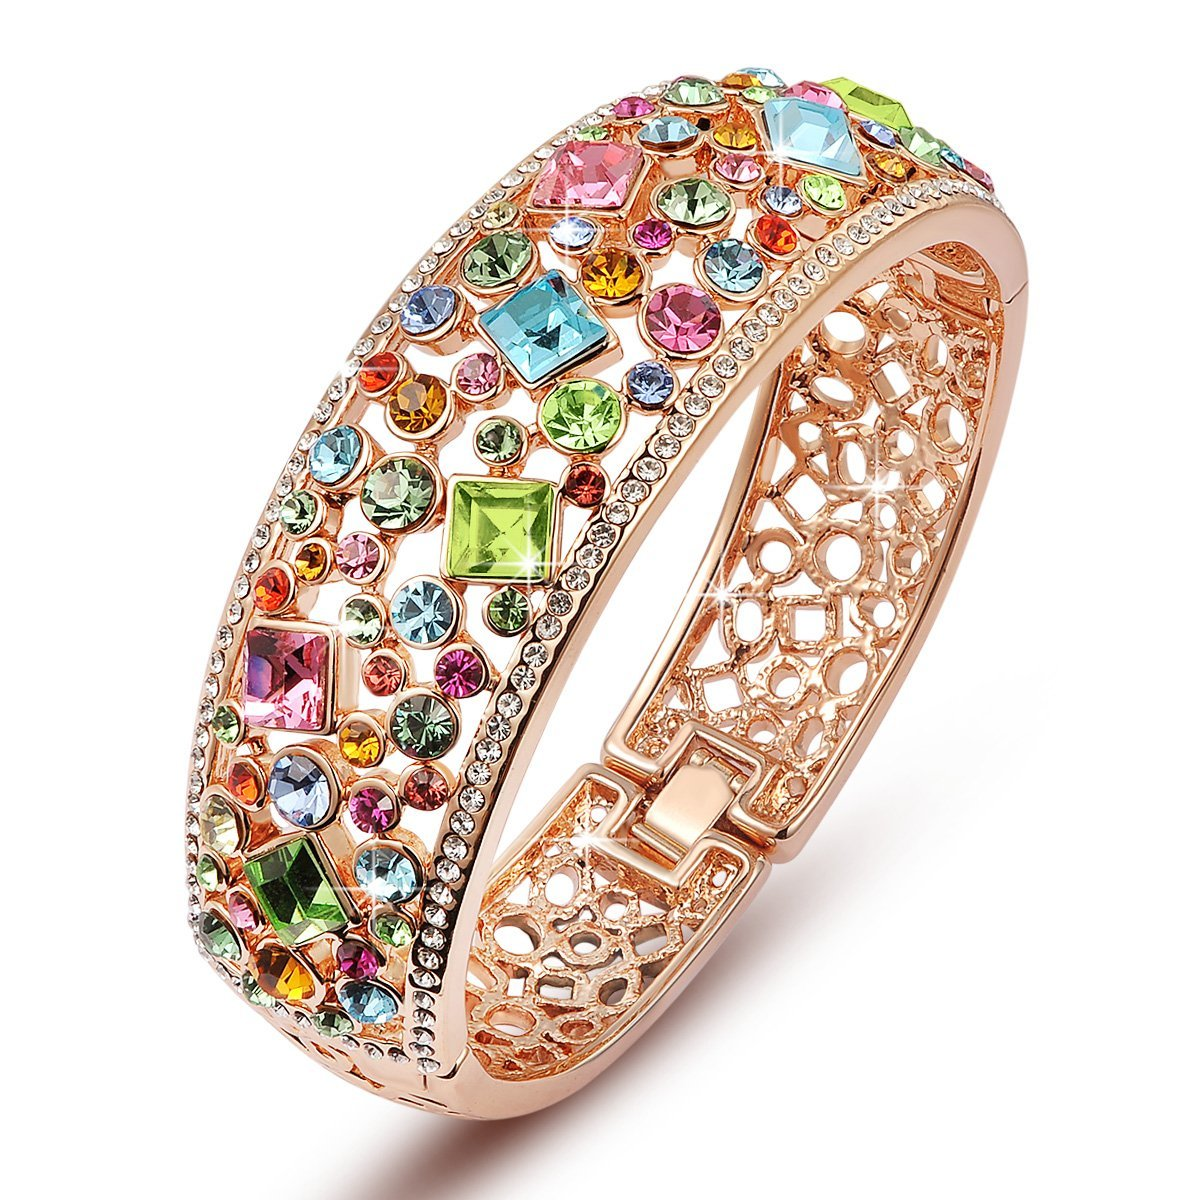 QIANSE ''Party Queen Rose Gold Plated Bangle Bracelets for Women Multicolor Austrian Crystals Bracelet Jewelry for Women Birthday Gifts for Women Gifts for Mom Grandma Sister Friend Gifts for Her